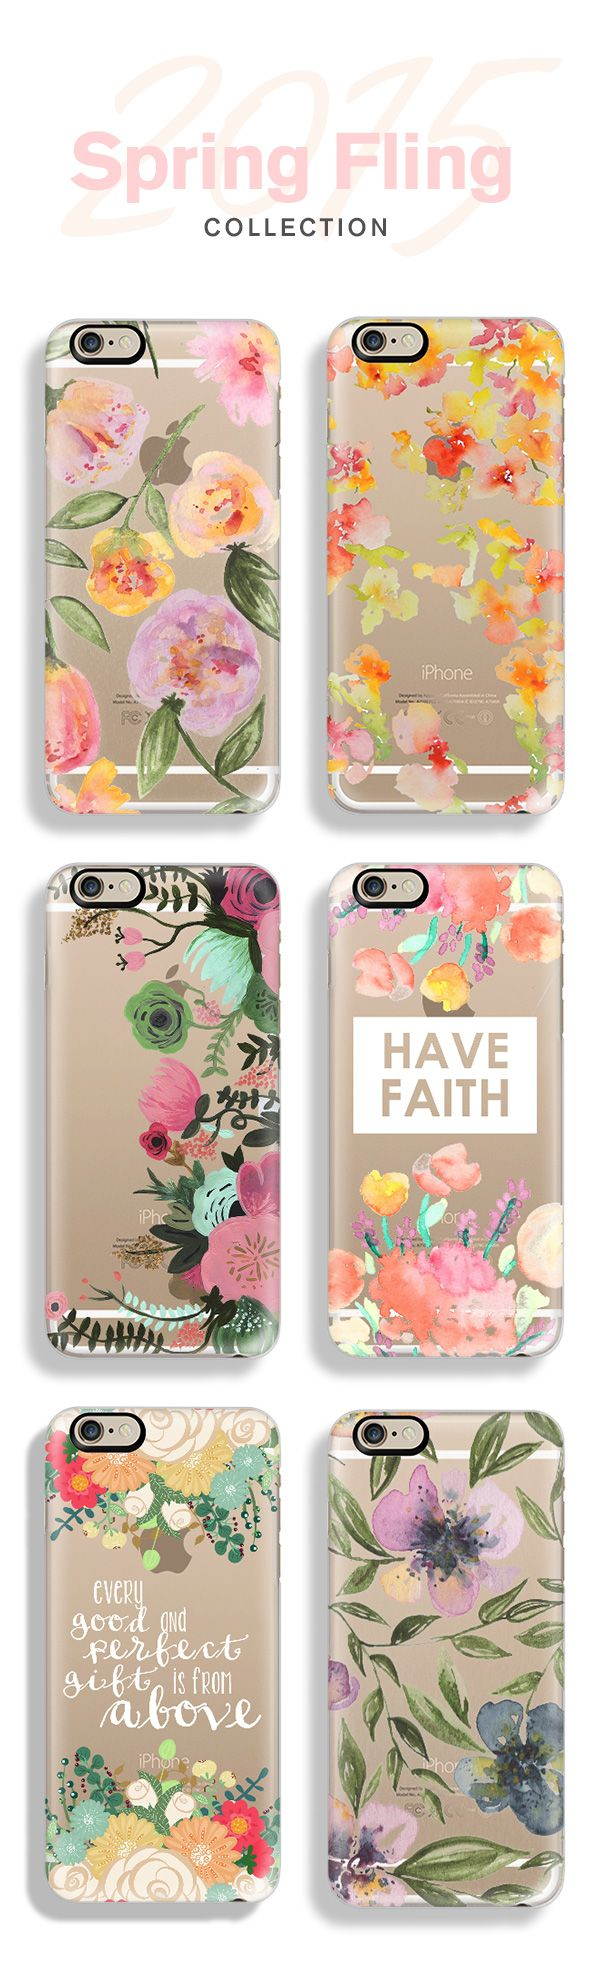 Top 6 spring floral iPhone 6 protective phone cases | Click through to see more floral print iPhone 6 phone case design ideas >>> http://www.casetify.com/collections/spring_fling?k=PNTRC #pastel | @casetify